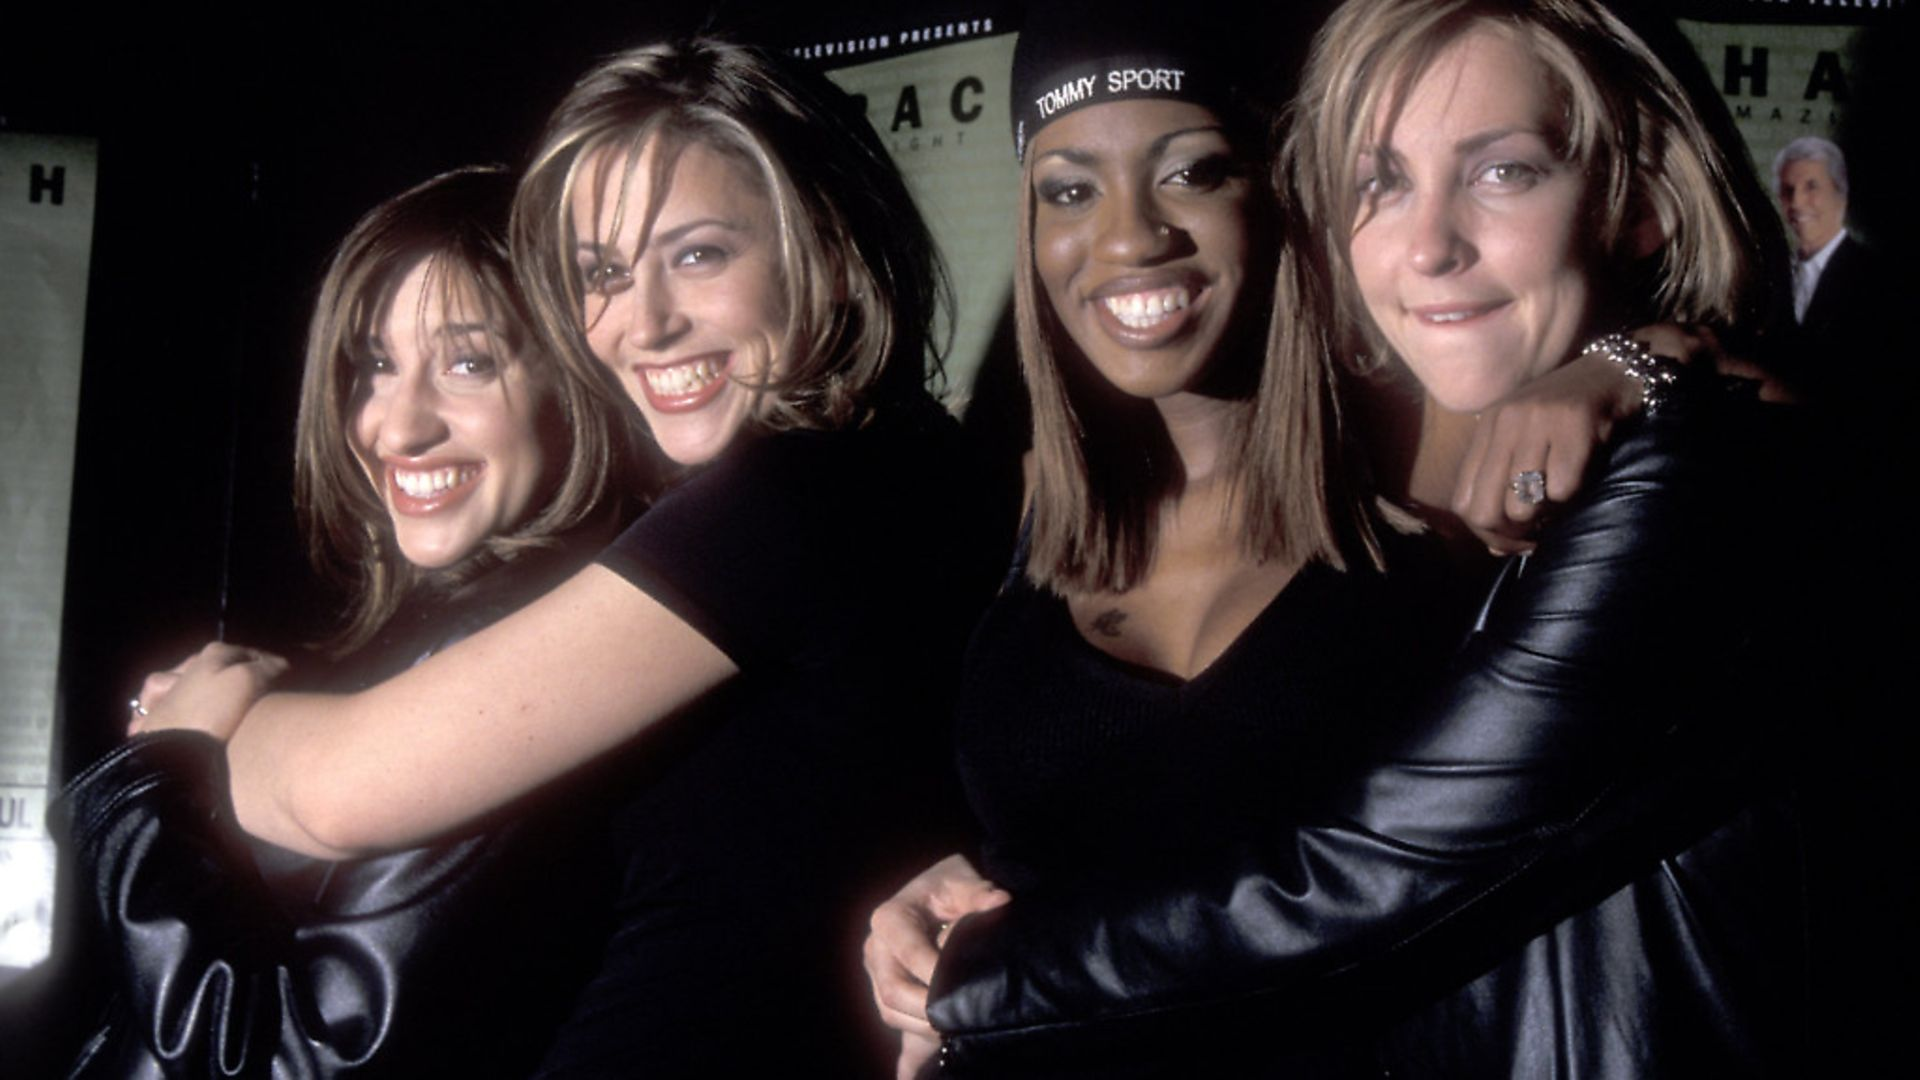 Girls on top: pop group All Saints attend the 1998 TNT Television Concert Special in New York. (Photo: Ron Galella/Getty Images) - Credit: Ron Galella Collection via Getty